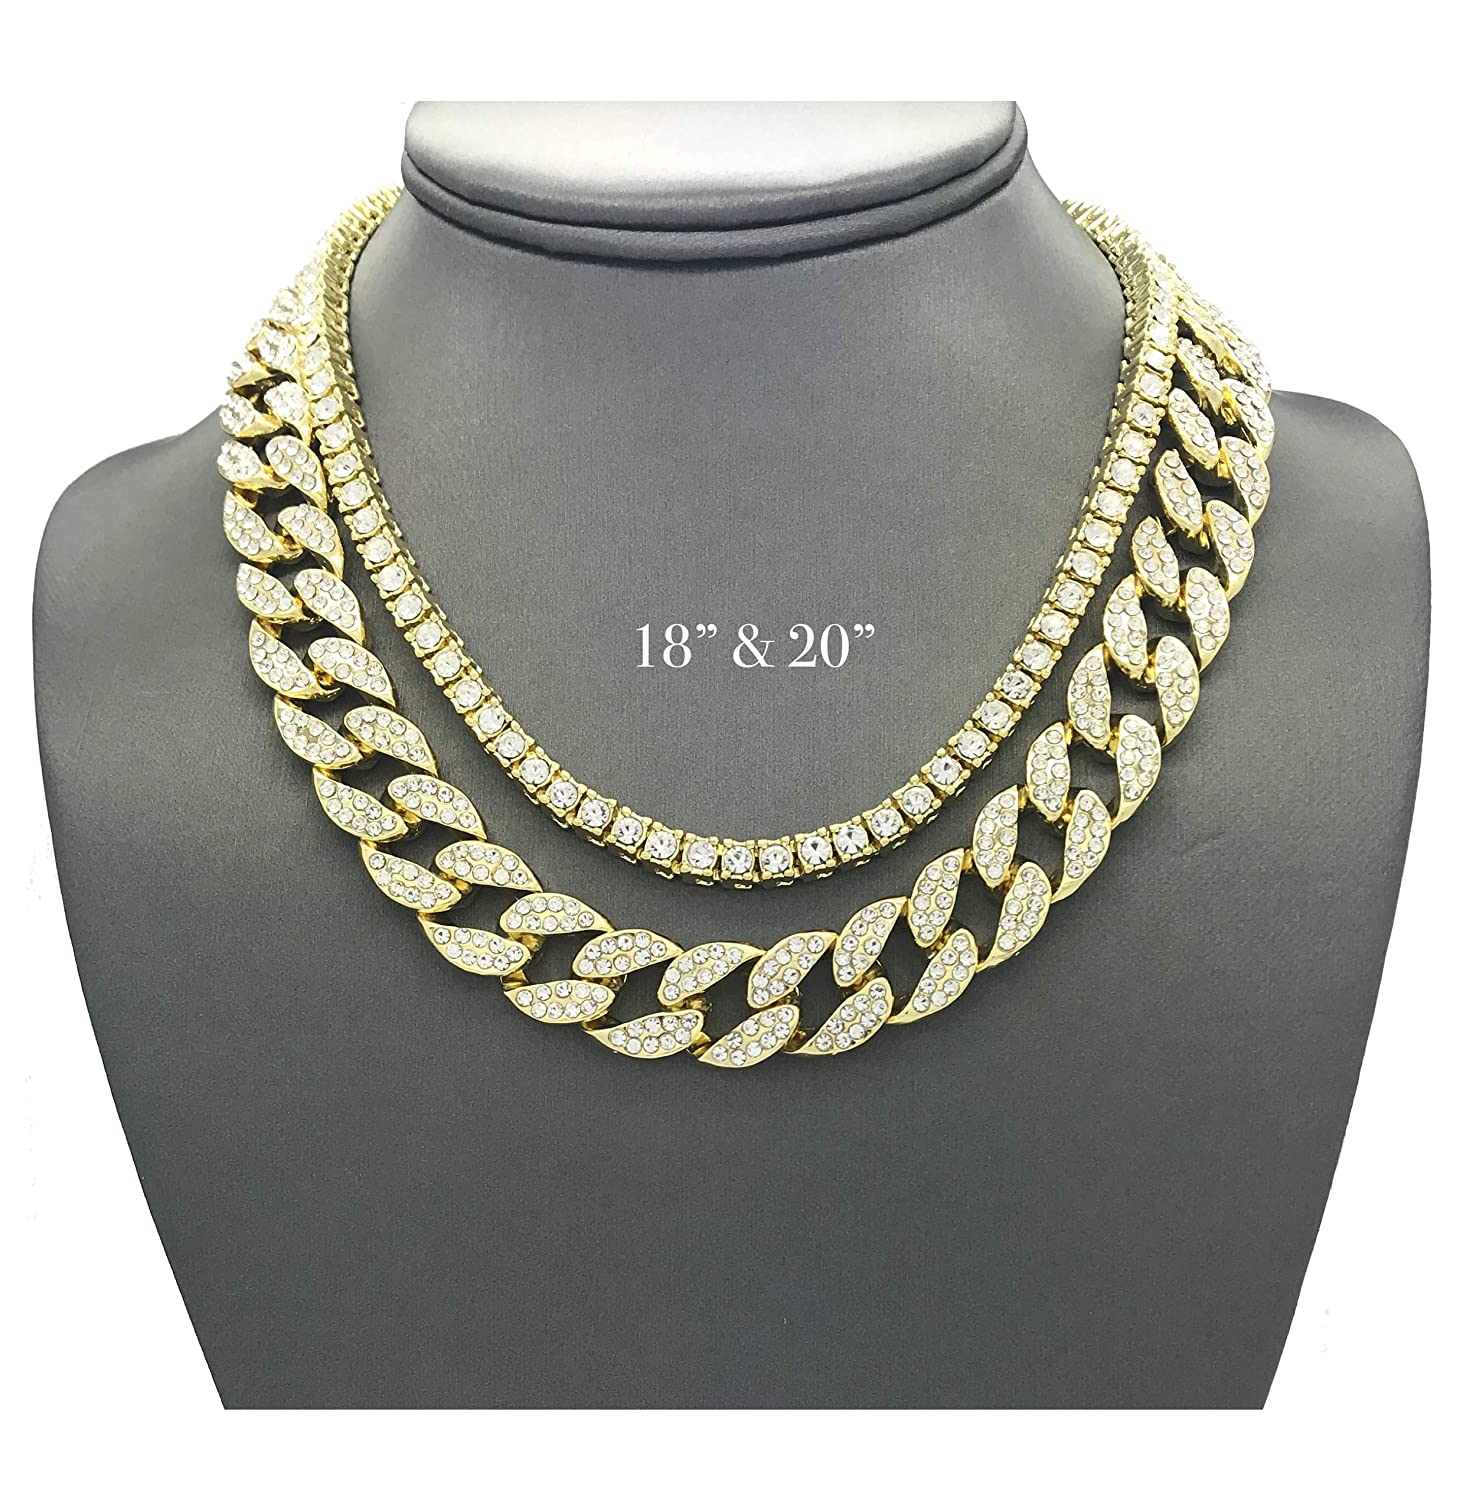 01b95ef19 Shiny Jewelers USA Mens Iced Out Hip Hop Gold tone CZ Miami Cuban Link Chain  Choker Necklace (1 Row CZ & CZ Cuban 18